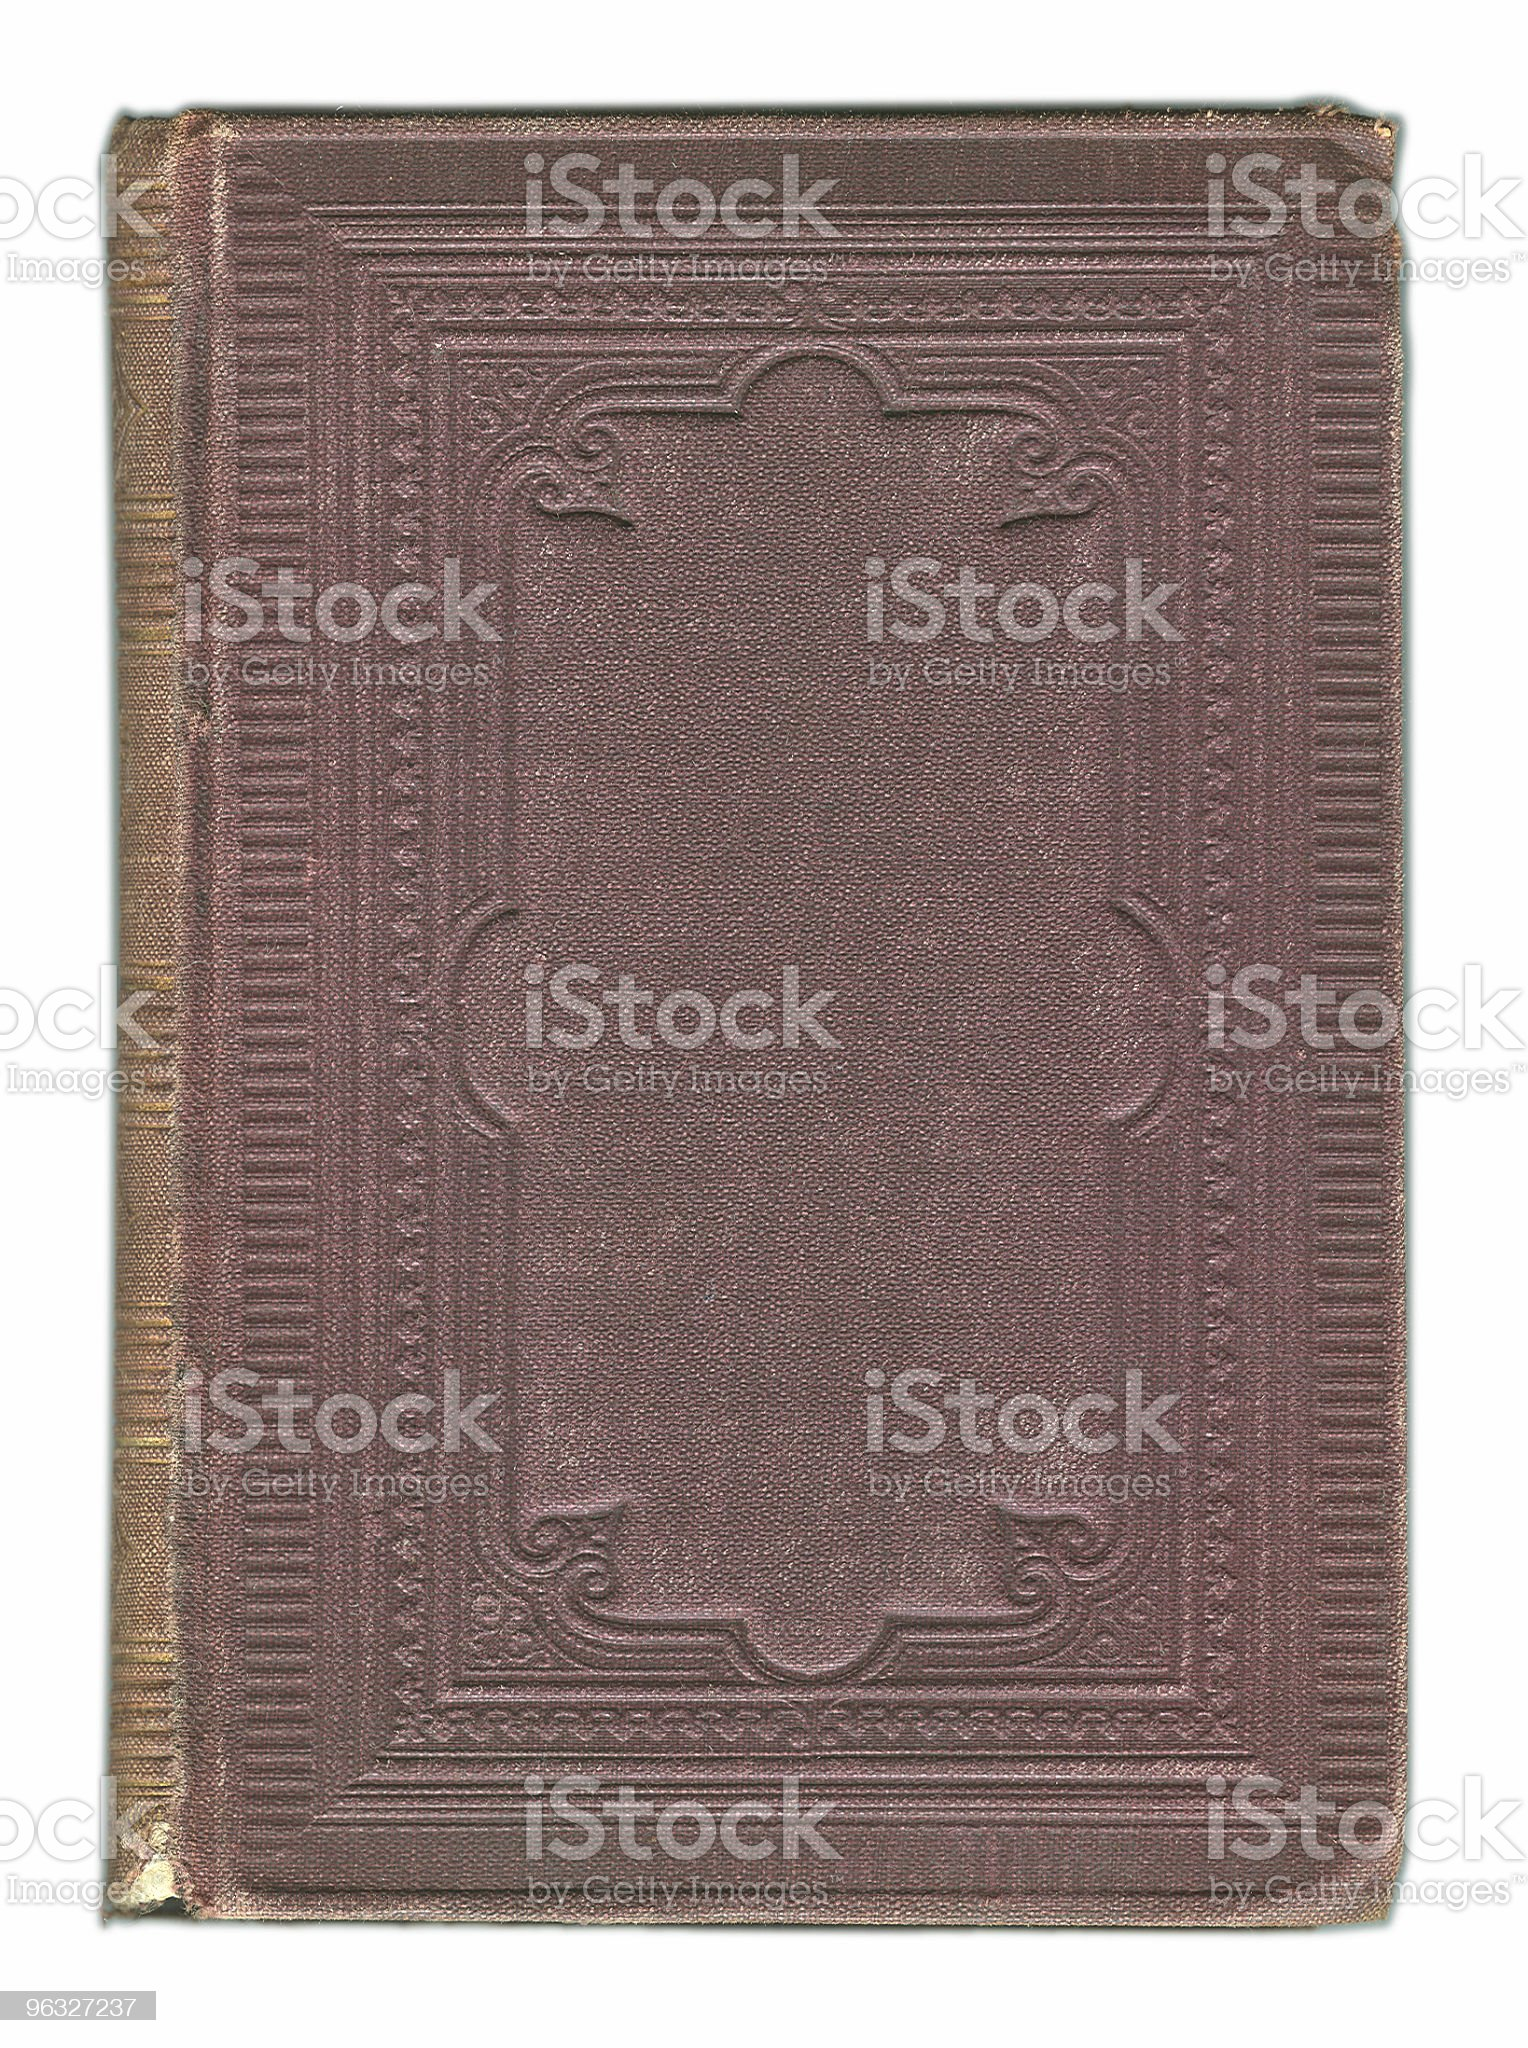 Atique book cover royalty-free stock photo